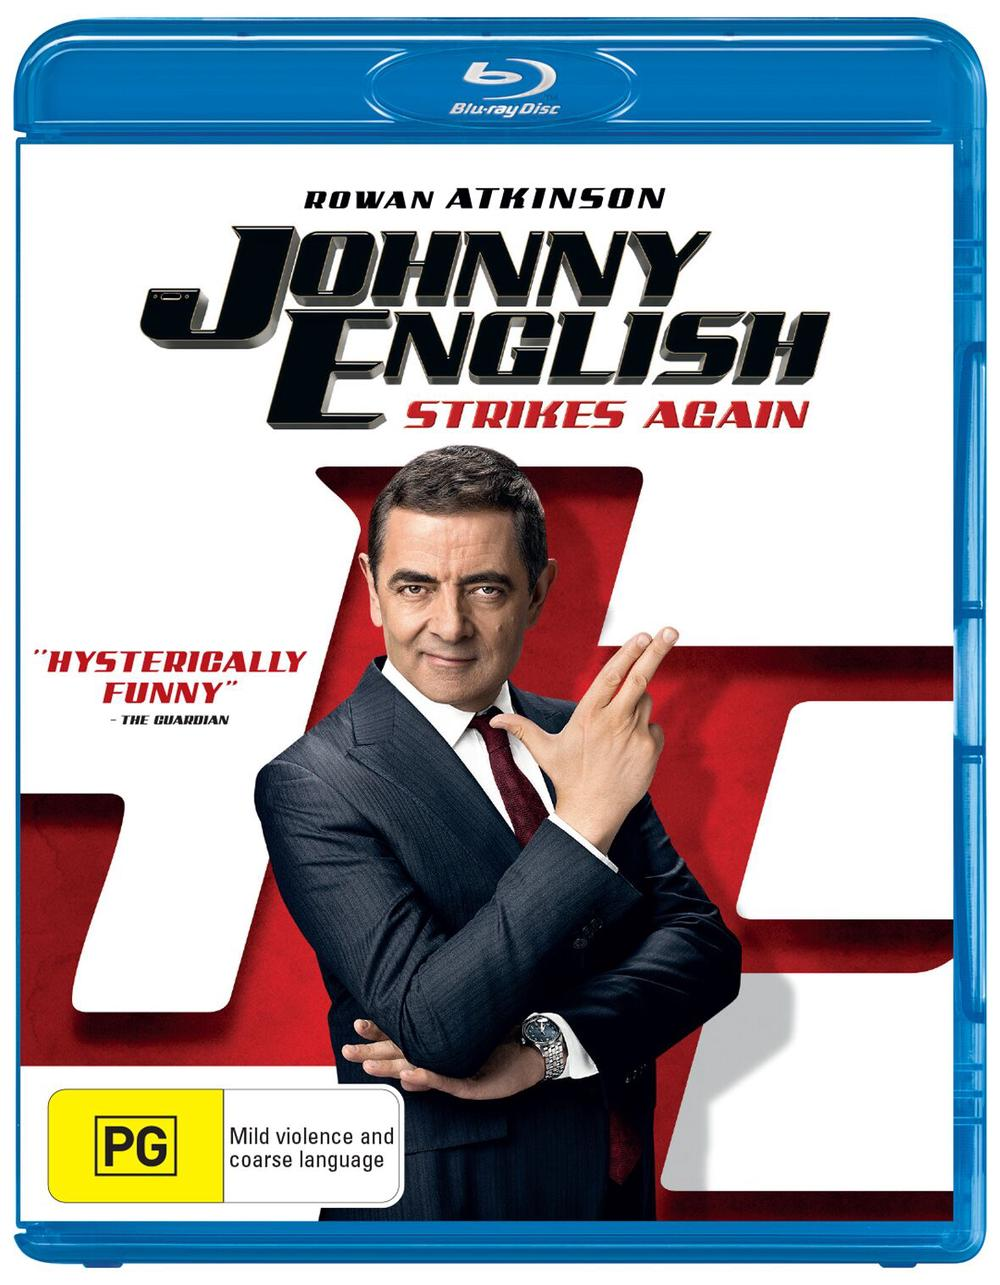 Johnny English Strikes Again - Blu-Ray & Digital